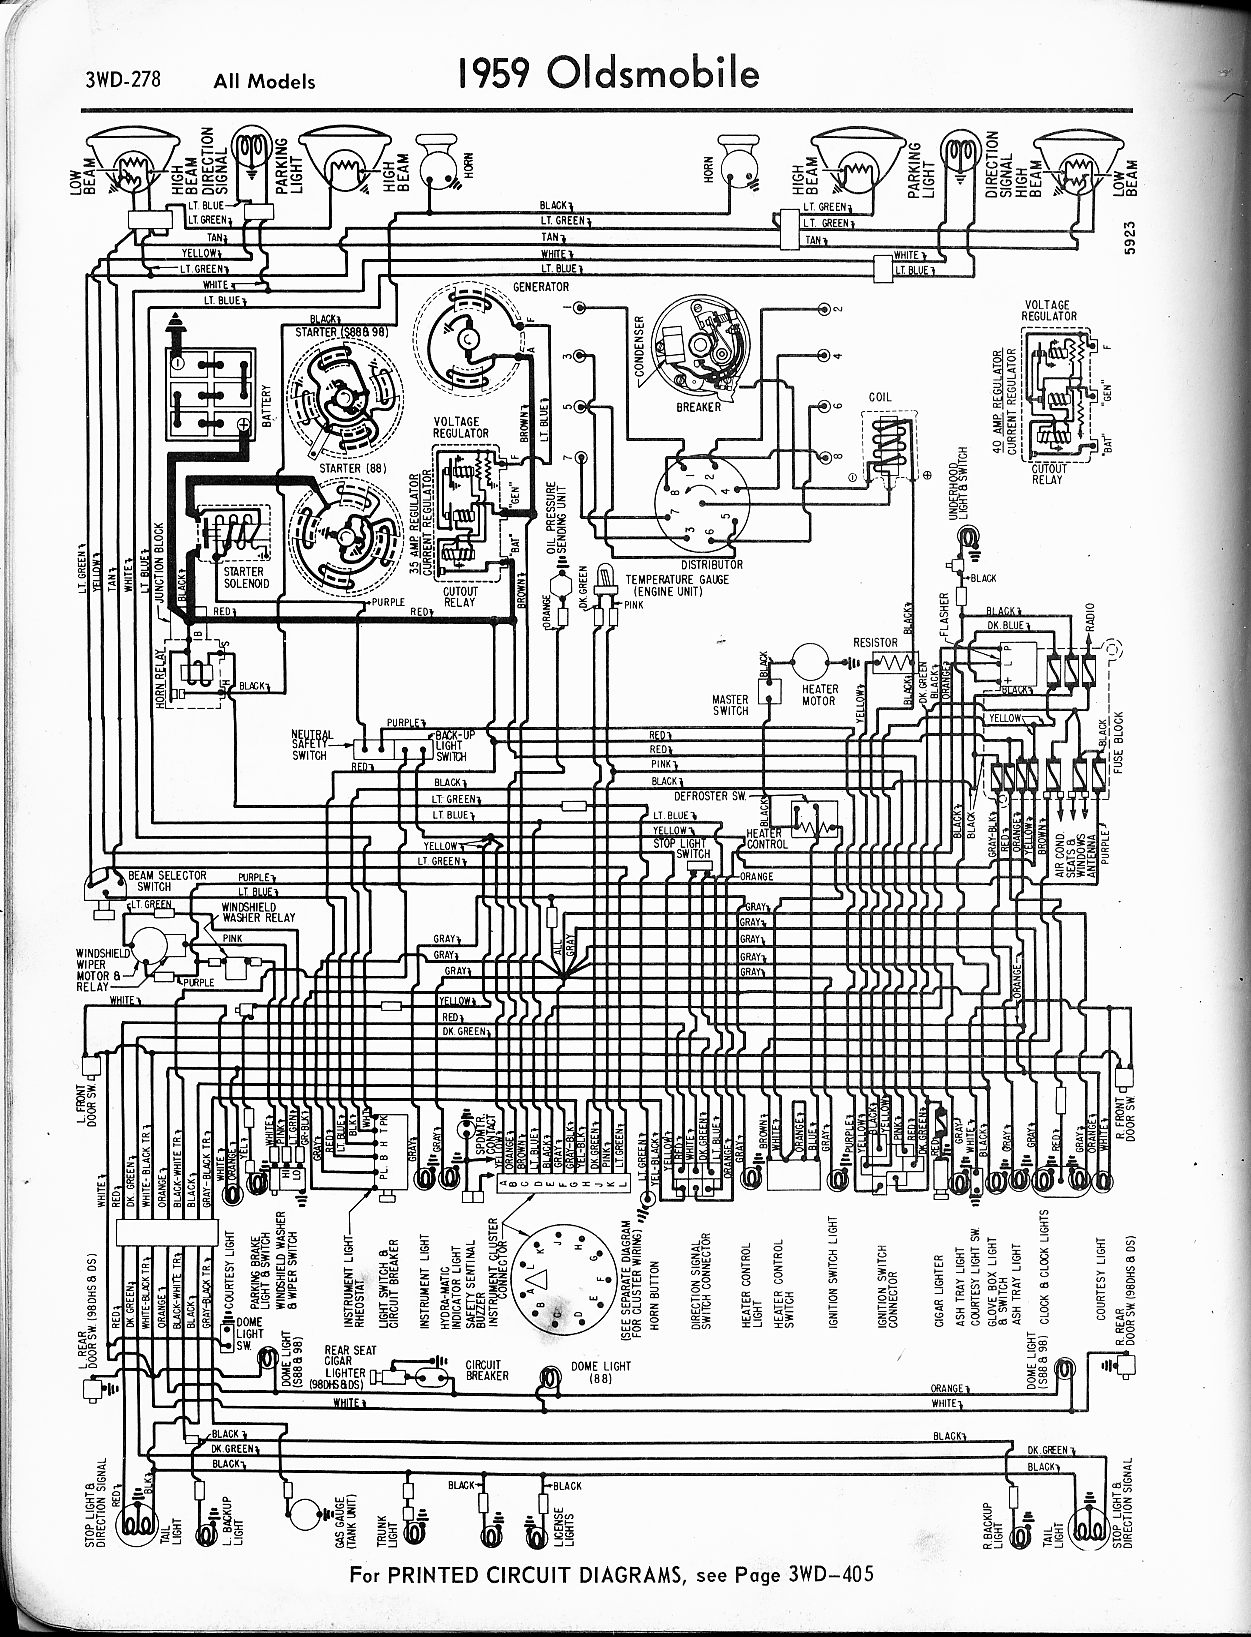 1971 Oldsmobile 88 Wiring Diagram Great Installation Of Ford Ignition 1990 Royale Schematic Rh 18 6 10 1813weddingbarn Com 1999 Vat 1967 Chevelle